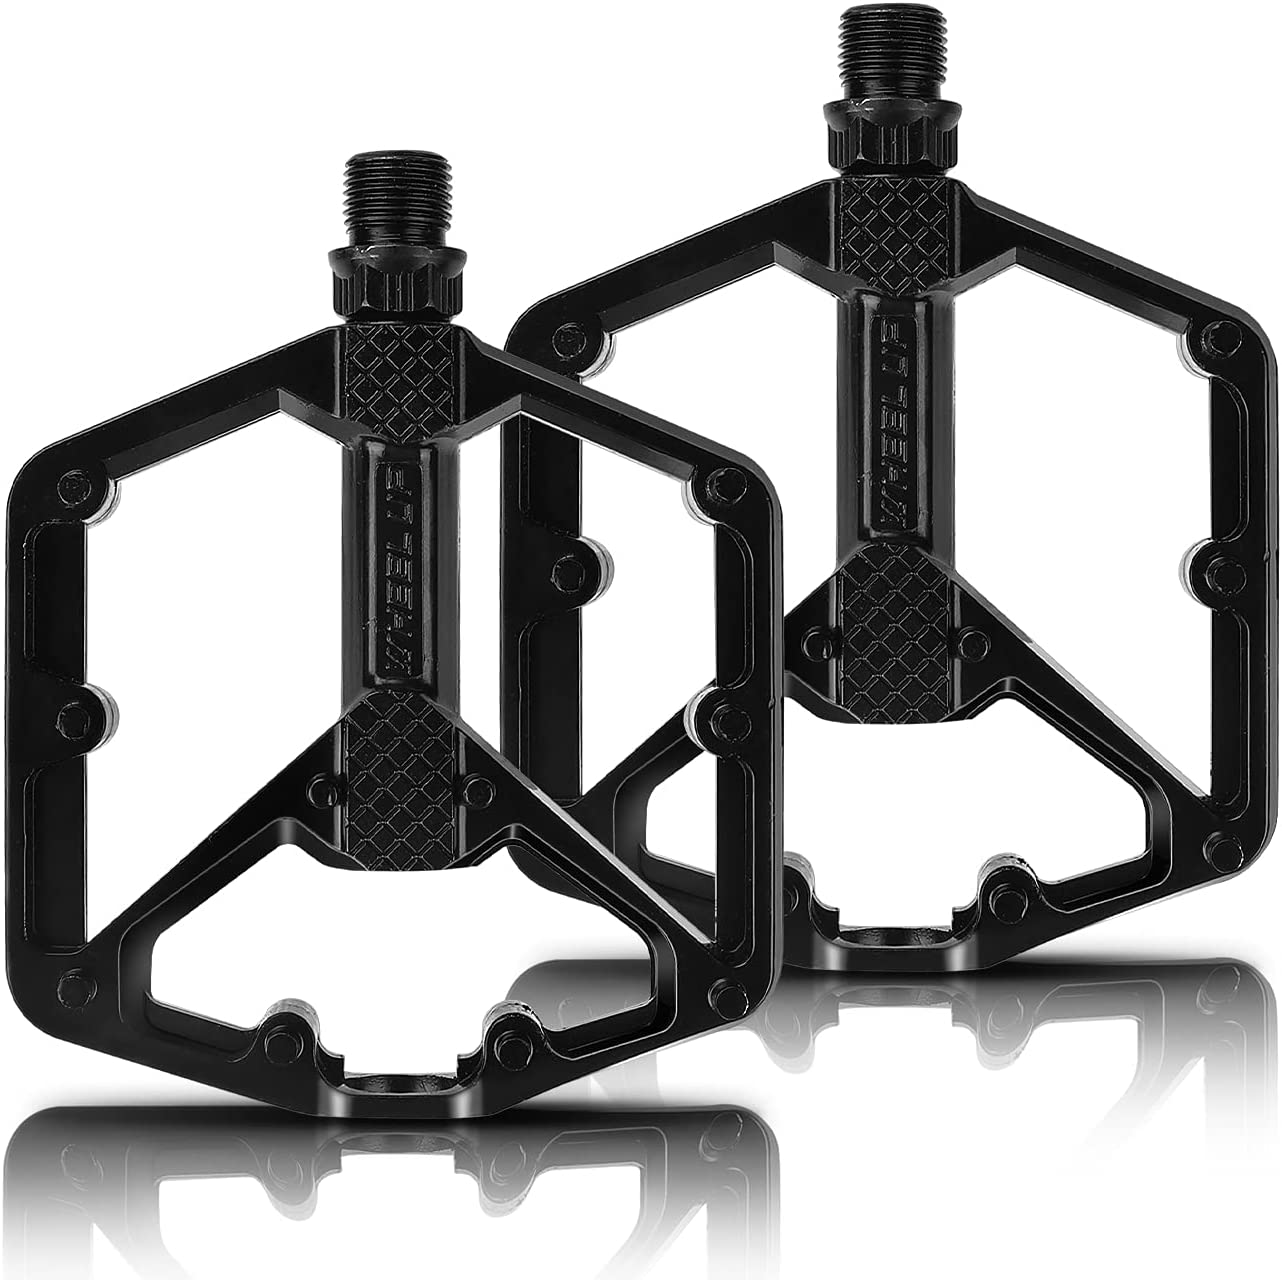 Laelr Bike Pedals Bicycle for DU P Mountain Long-awaited 70% OFF Outlet Double